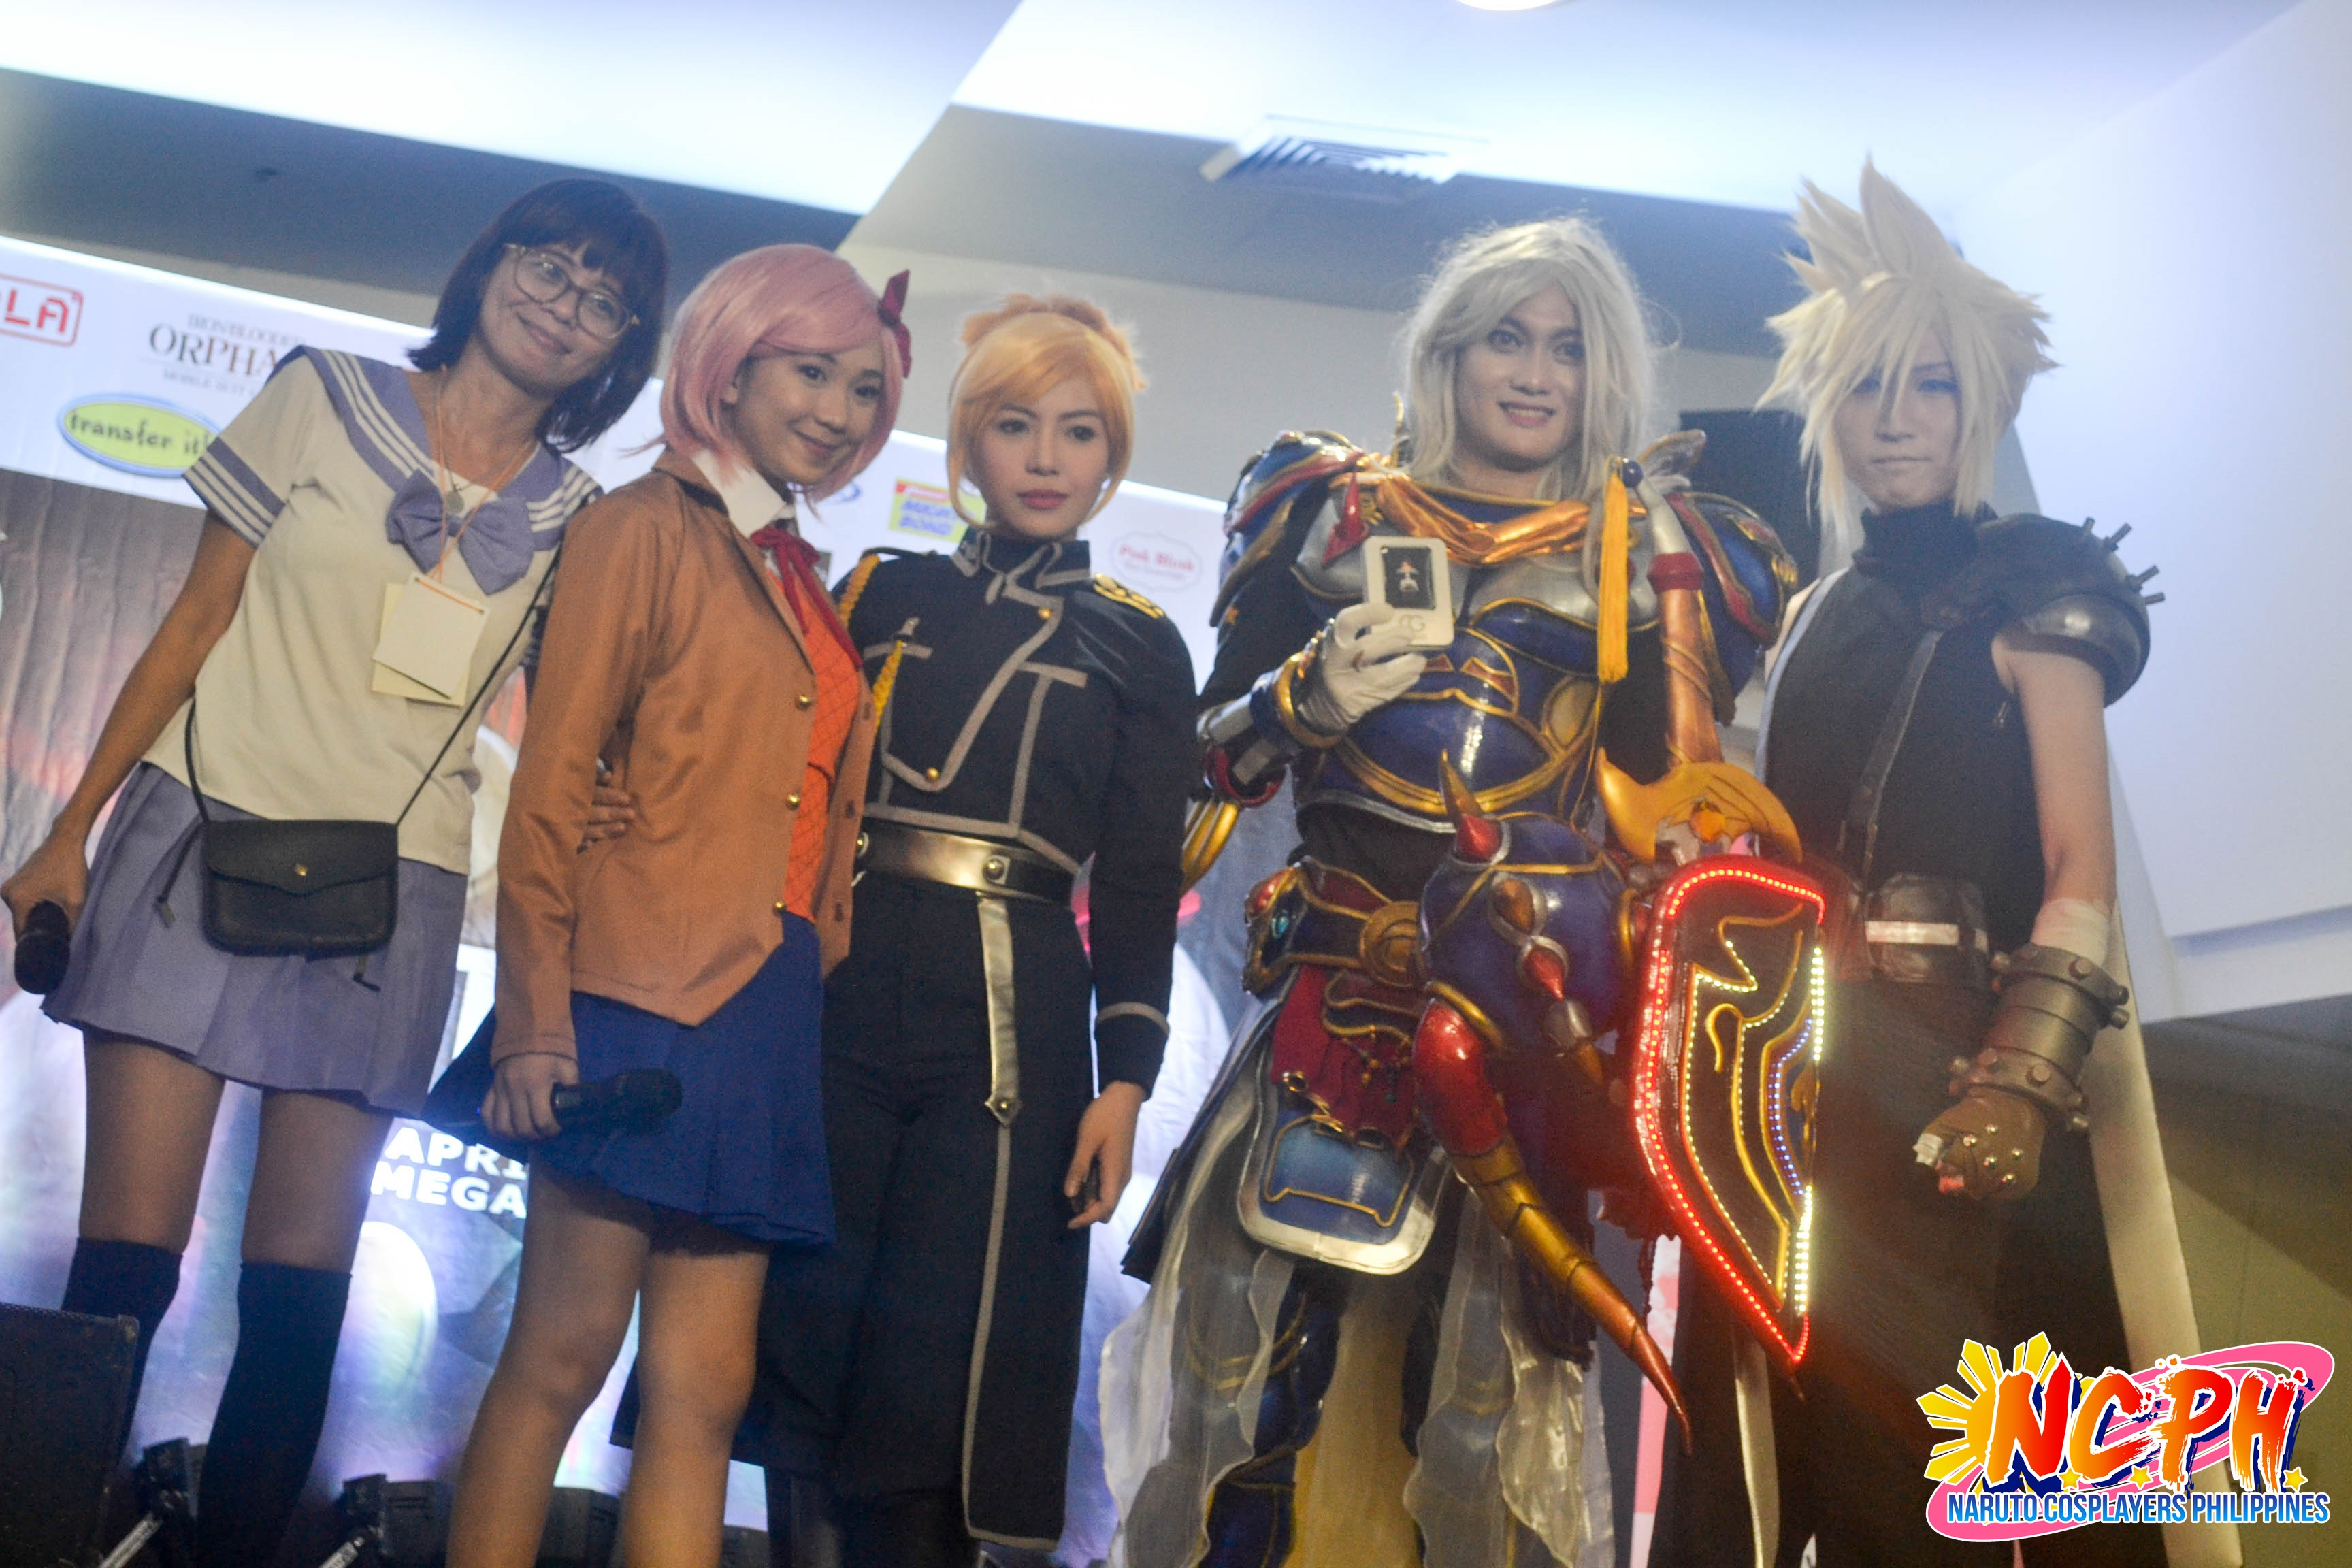 Tagcom 2018 Aftermath Naruto Cosplayers Philippines